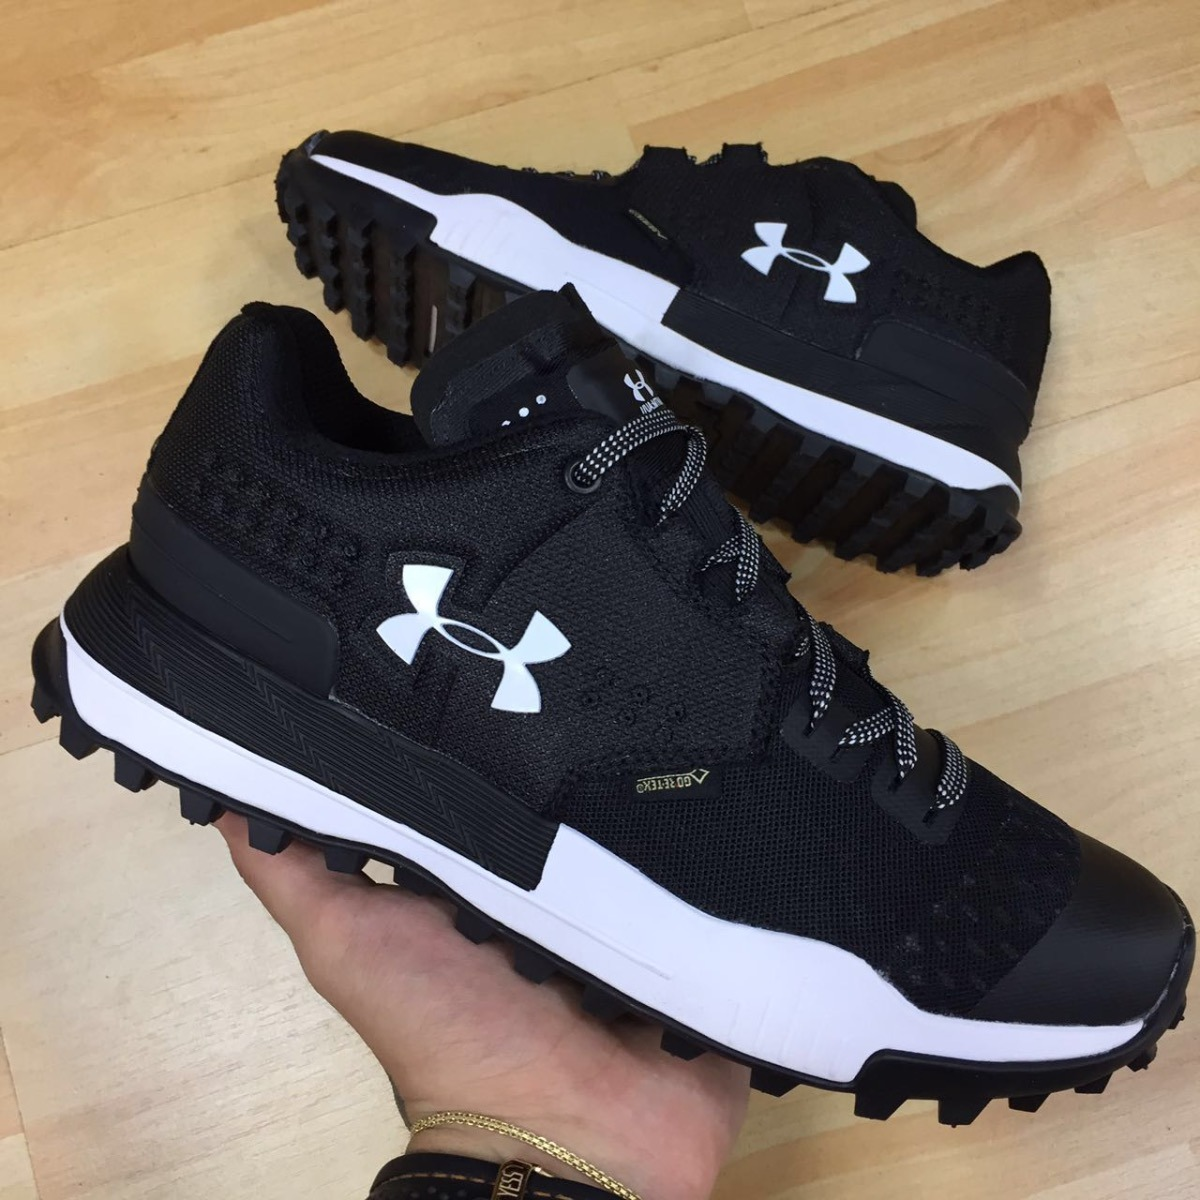 Gore Tex Zapatillas Under Armour Running Negra Tenis Blanca kw8nOPX0